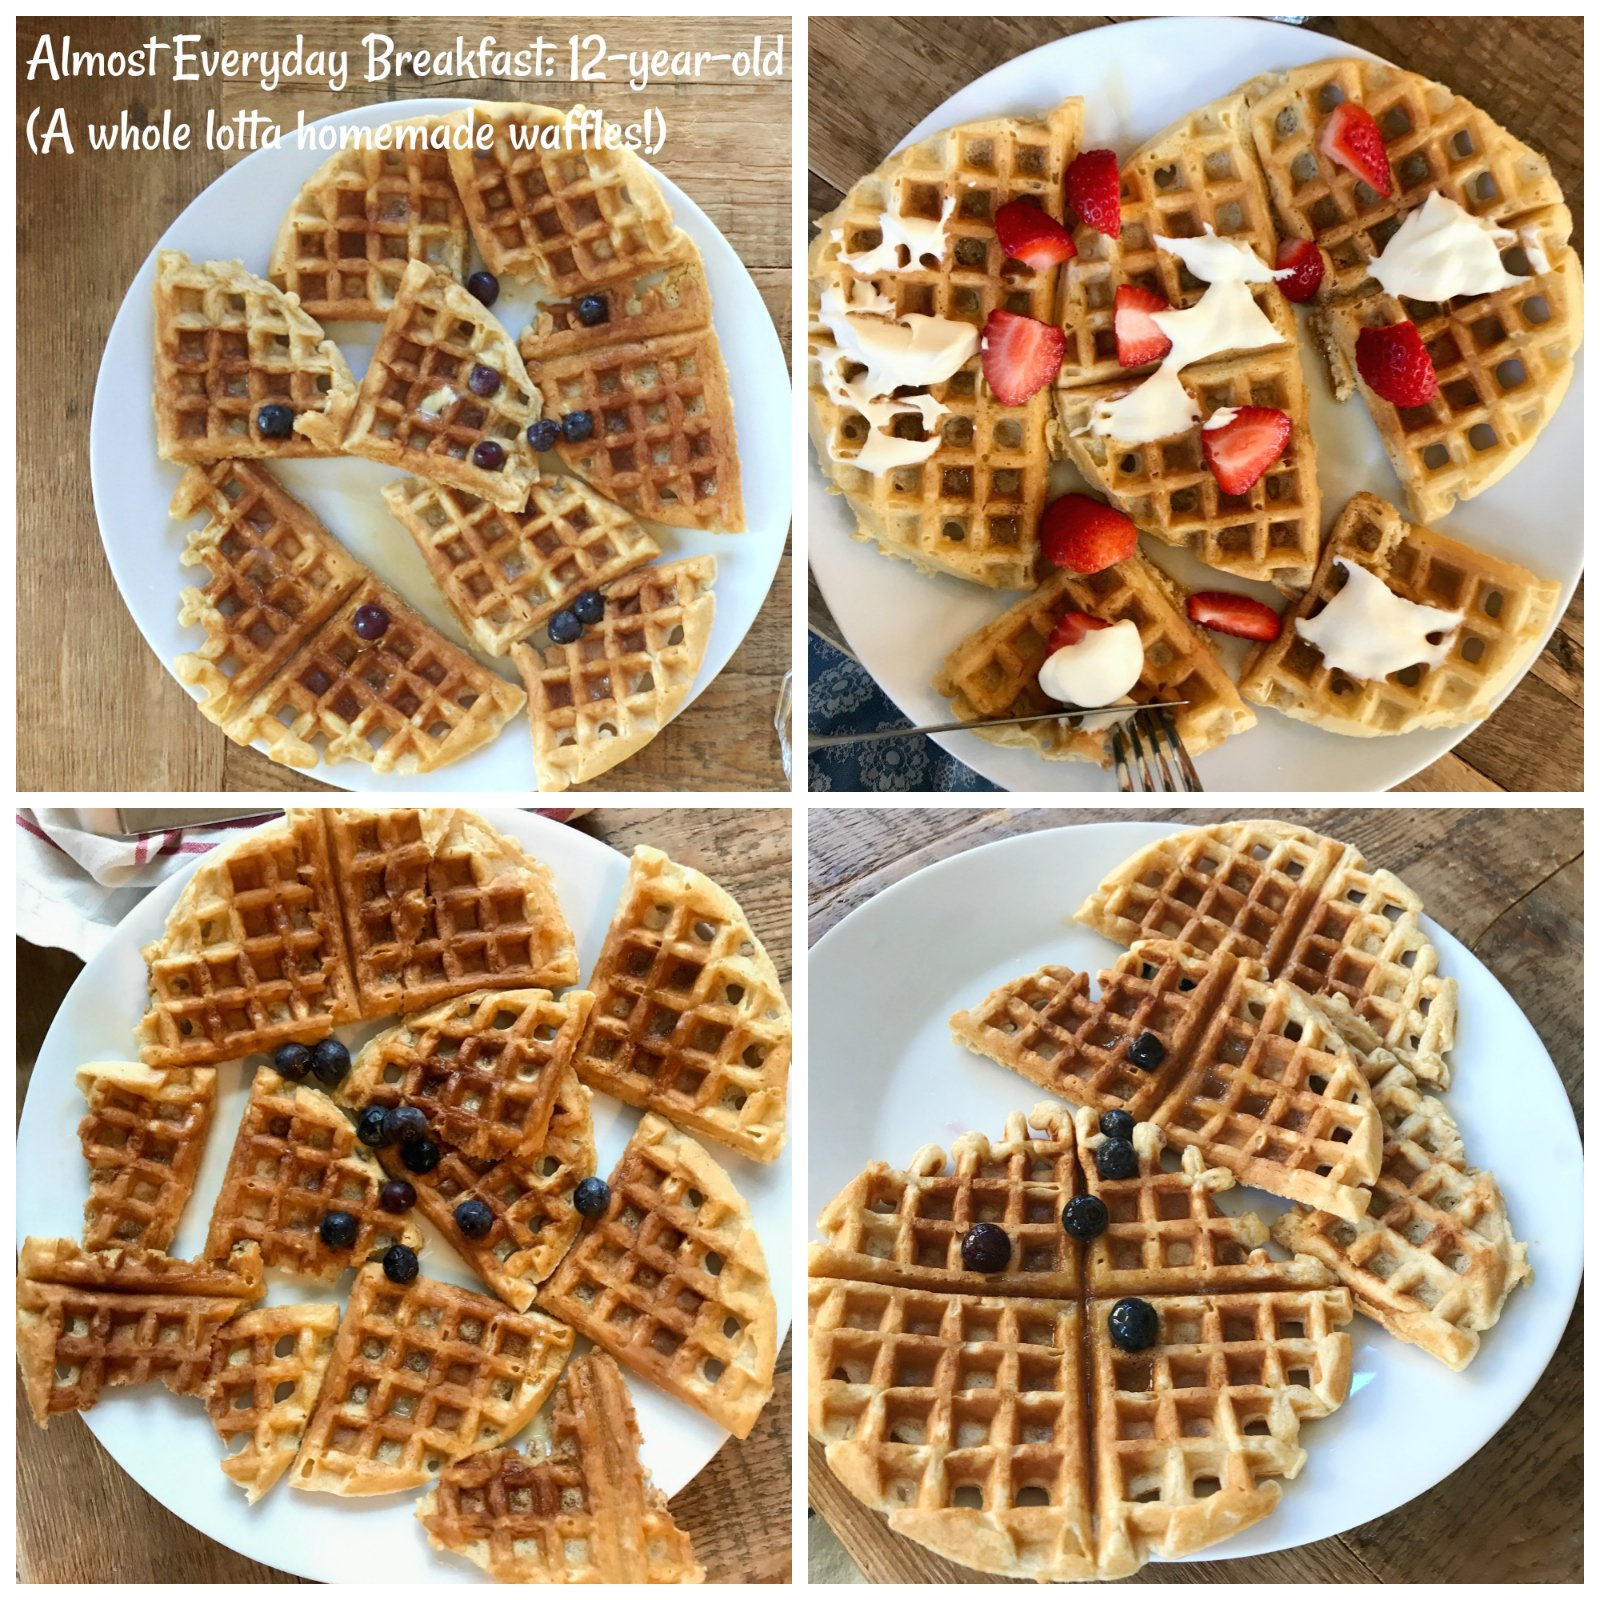 A week of real food breakfast: waffles